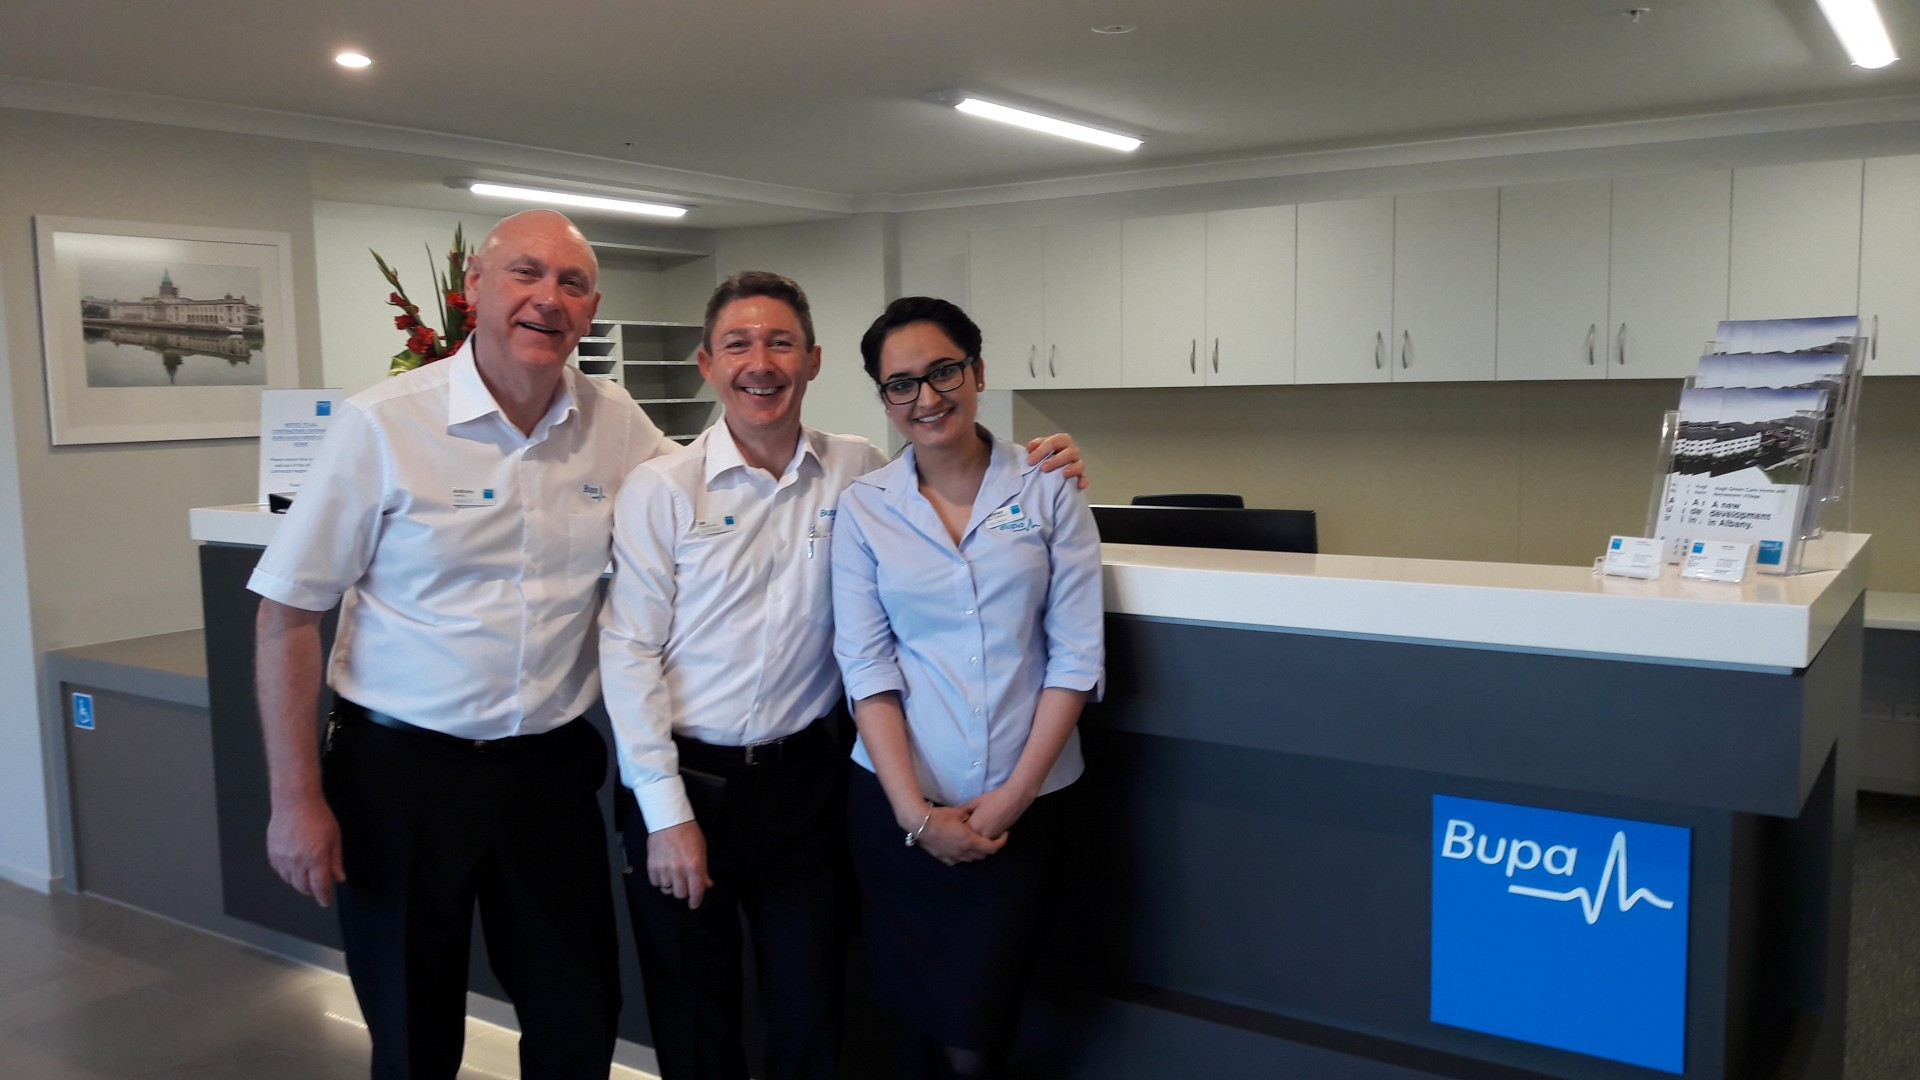 Bupa-New-Zealand-Care-Home-Hugh-Green-Team